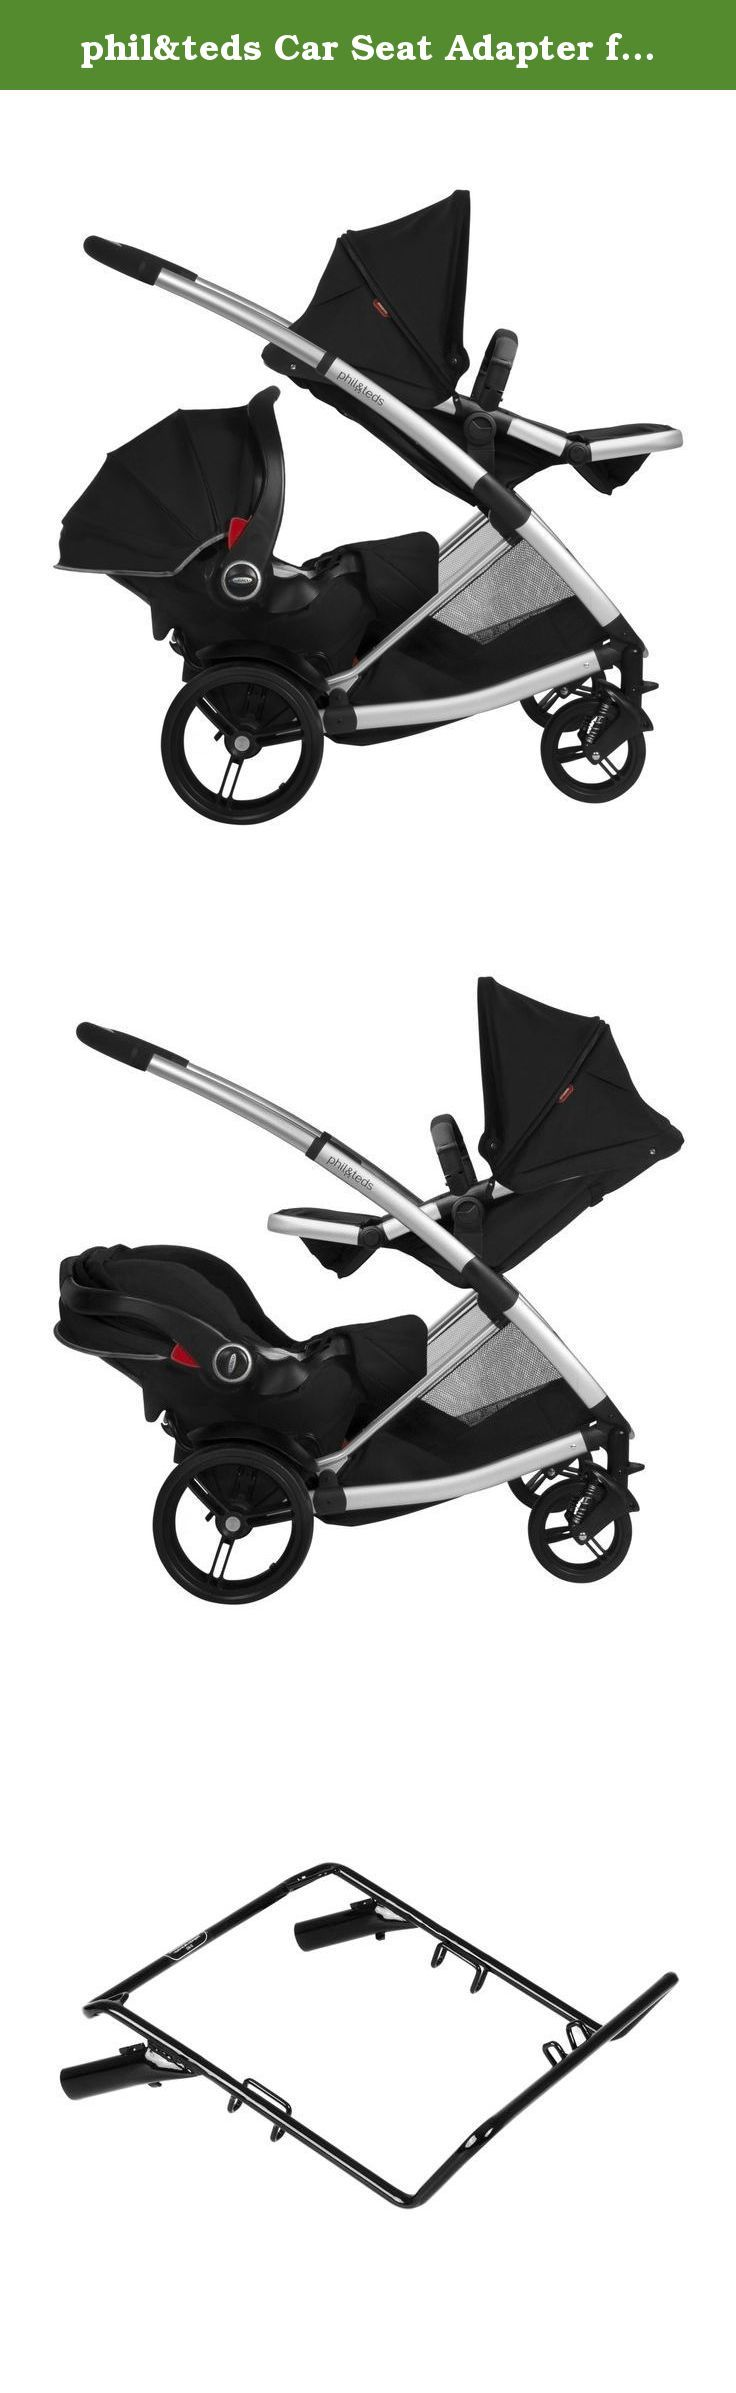 phil&teds Car Seat Adapter for Graco Click Connect and